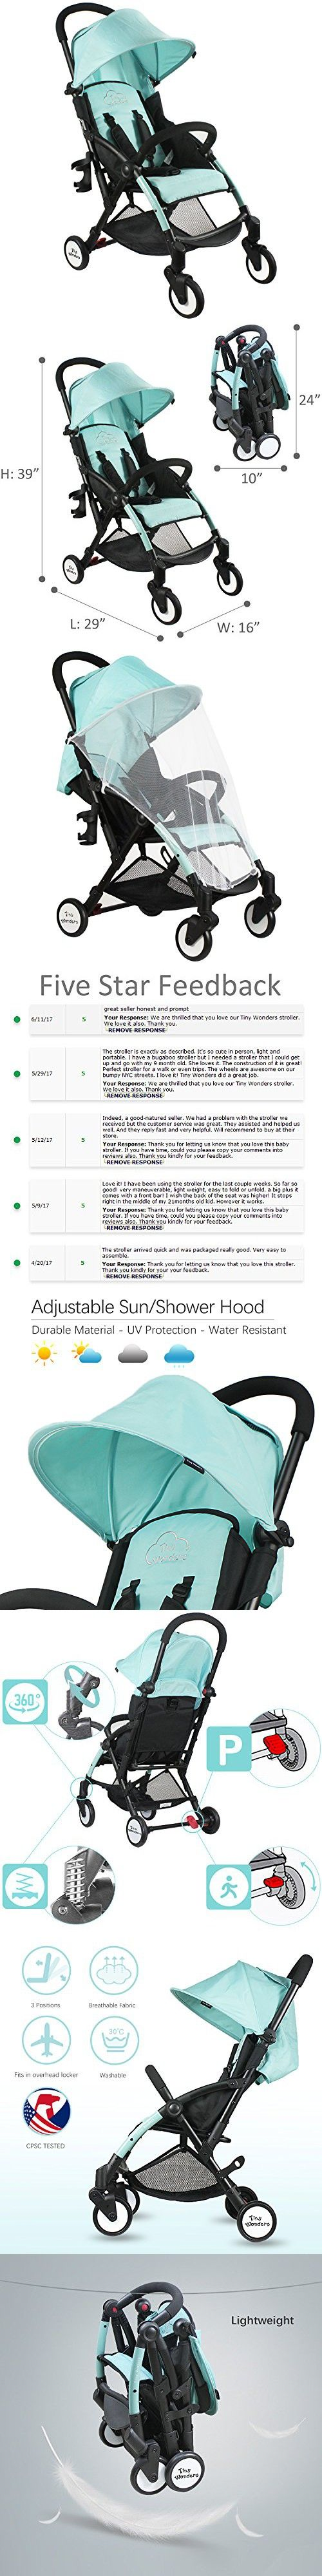 Green Deluxe Dual-Brake Single Baby Stroller, Portable Light Weight Travel Pram, Large Water Resistant Umbrella Canopy For Infant Toddler, Boys, Girls Unisex 3 Month, 1, 2 Year Old and UP